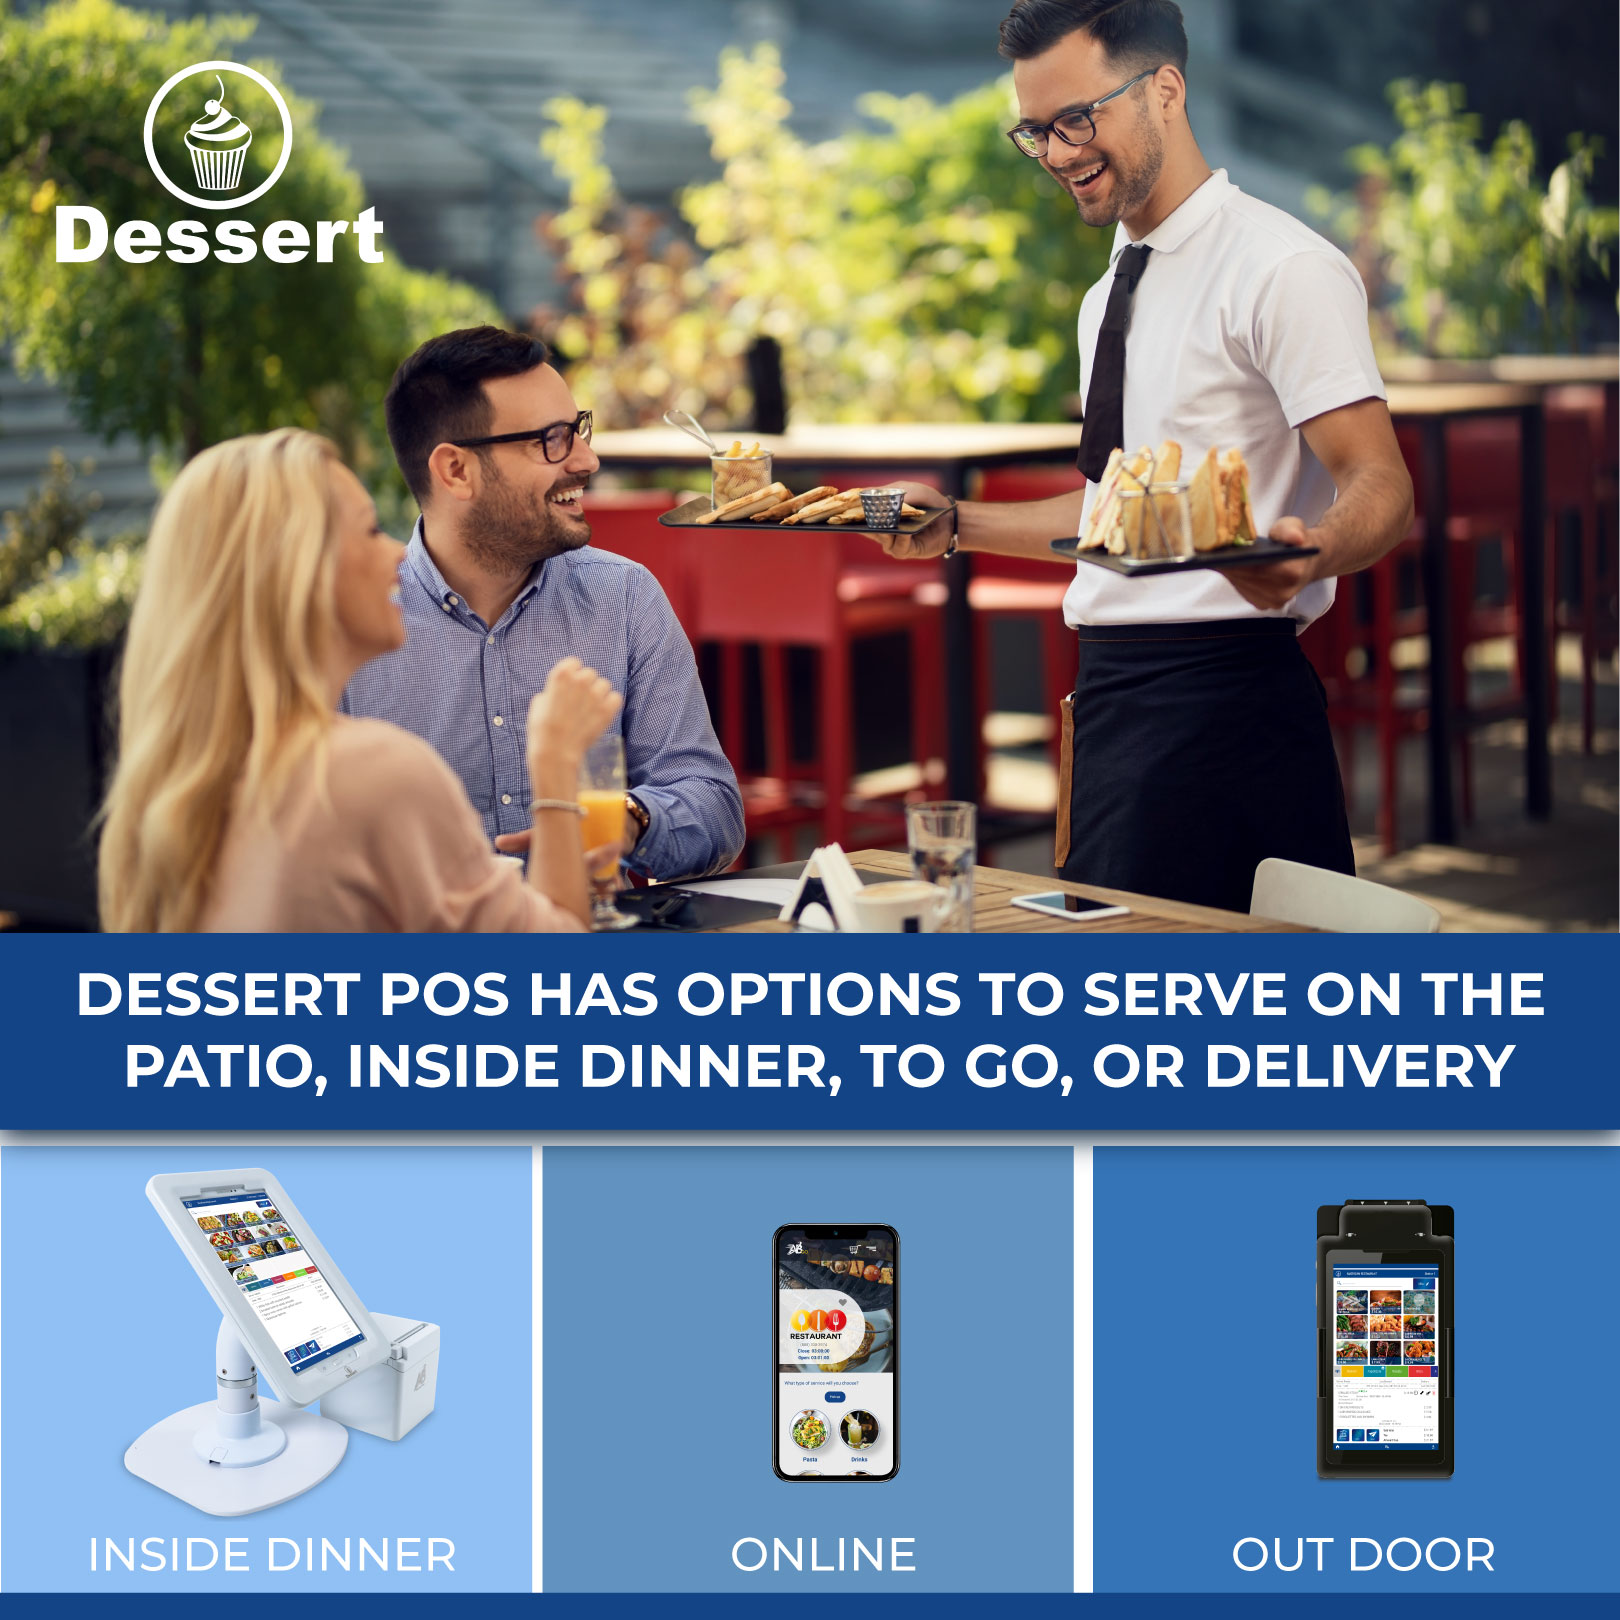 Dessert Point of Sale combines powerful cloud-based software, payment processing,  and beautiful hardware, all built for the restaurant industry